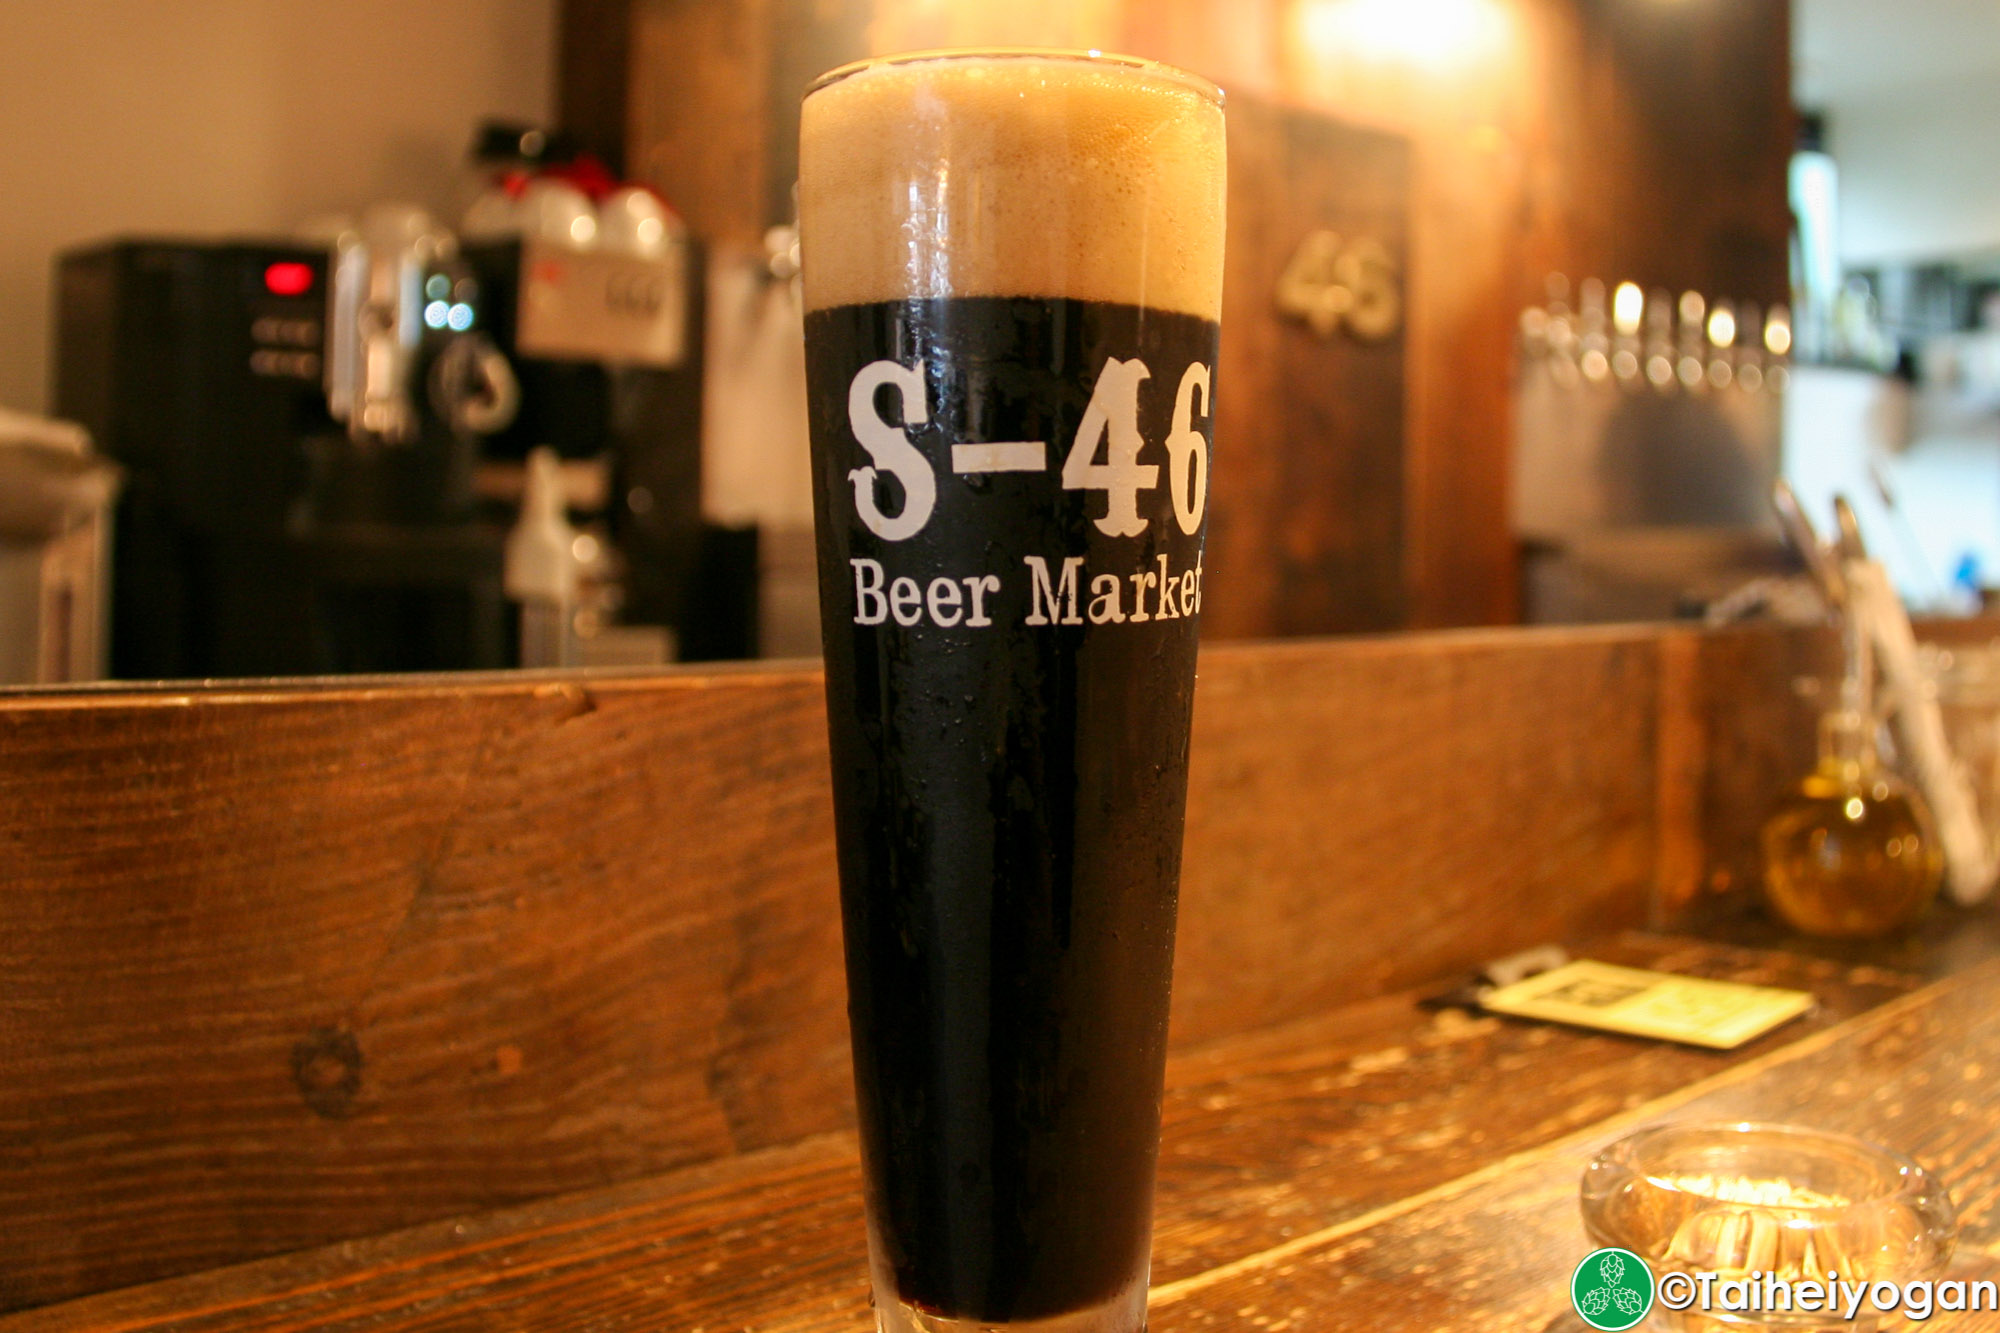 S-46 Beer Market - Menu - Craft Beer